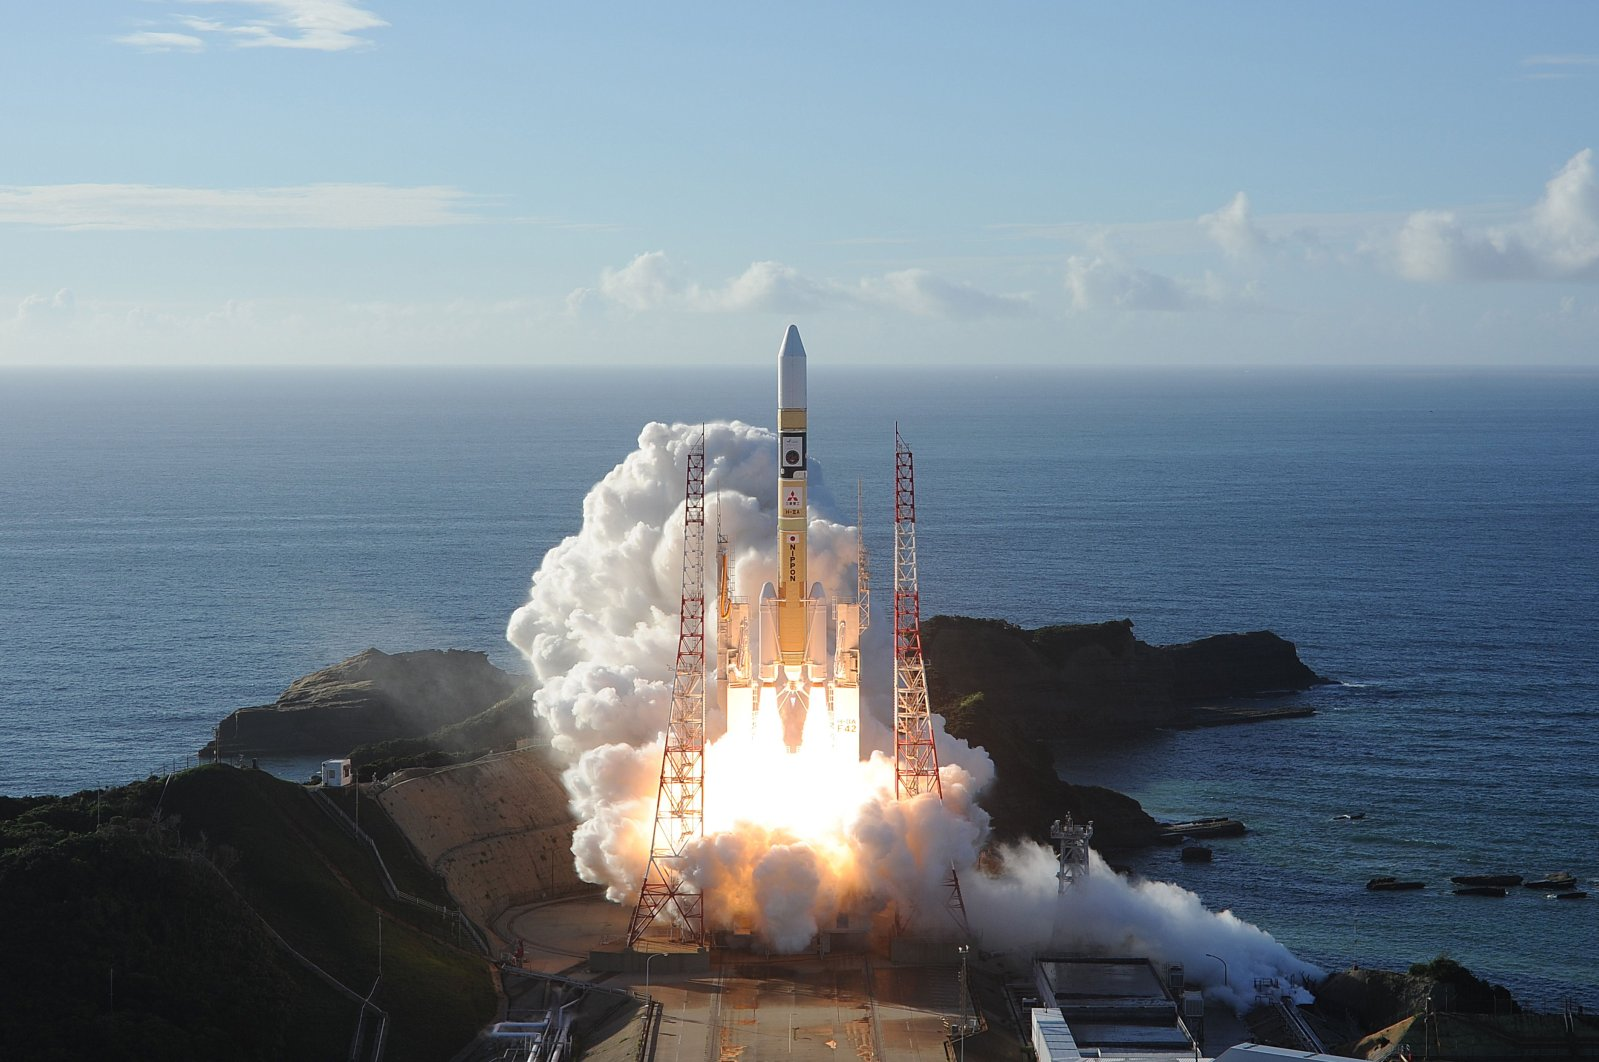 """In this handout photograph taken and released on July 20, 2020 by Mitsubishi Heavy Industries an H-2A rocket carrying the Hope Probe known as """"Al-Amal"""" in Arabic, developed by the Mohammed Bin Rashid Space Centre (MBRSC) in UAE to explore Mars, blasts off from Tanegashima Space Centre in southwestern Japan. (Mitsubishi Heavy Industries / AFP Photo)"""